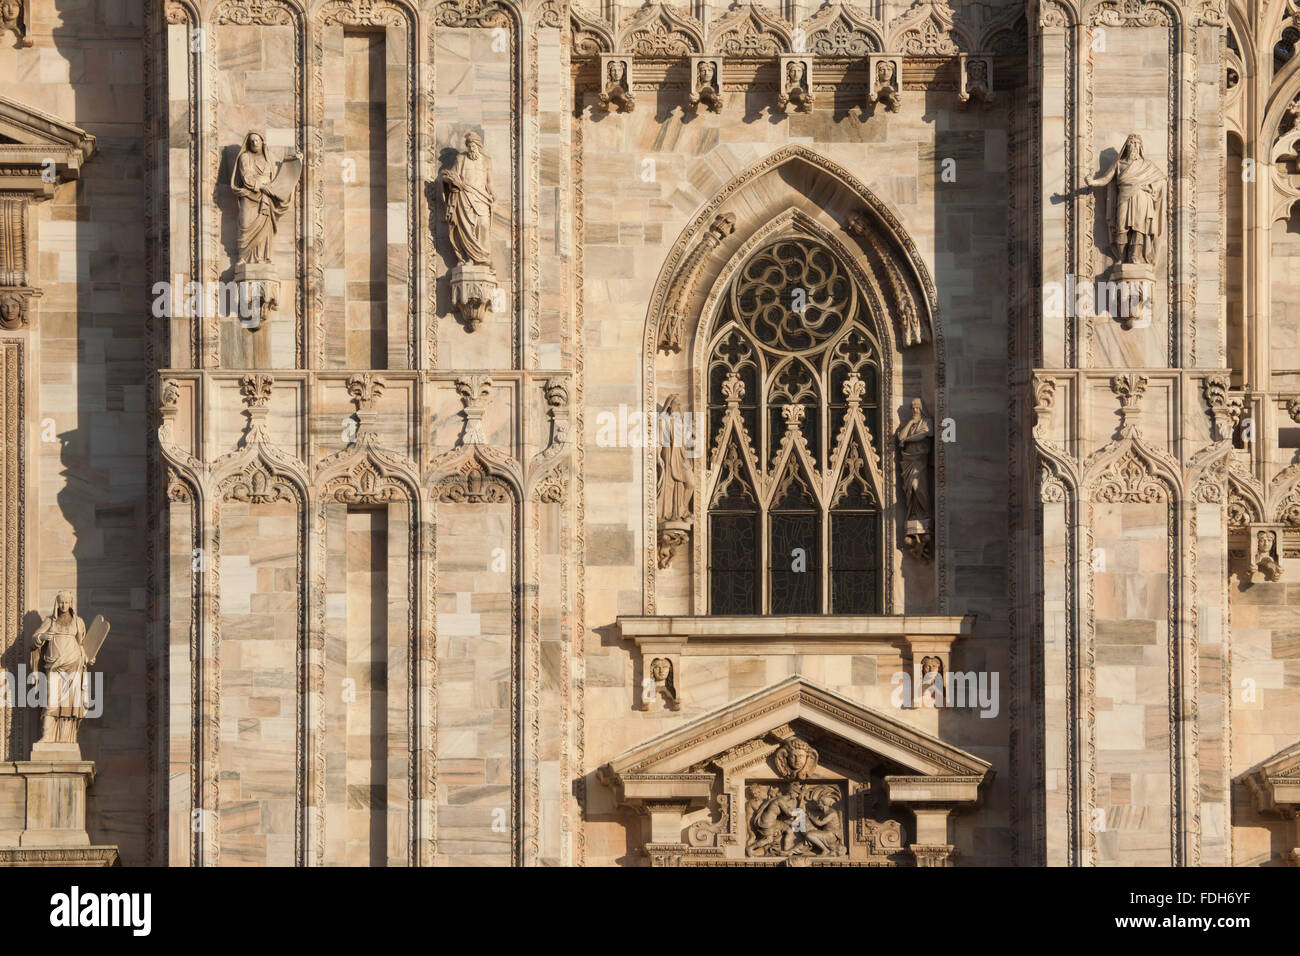 Detail of the main facade of the Milan Cathedral (Duomo di Milano) in Milan, Lombardy, Italy. - Stock Image